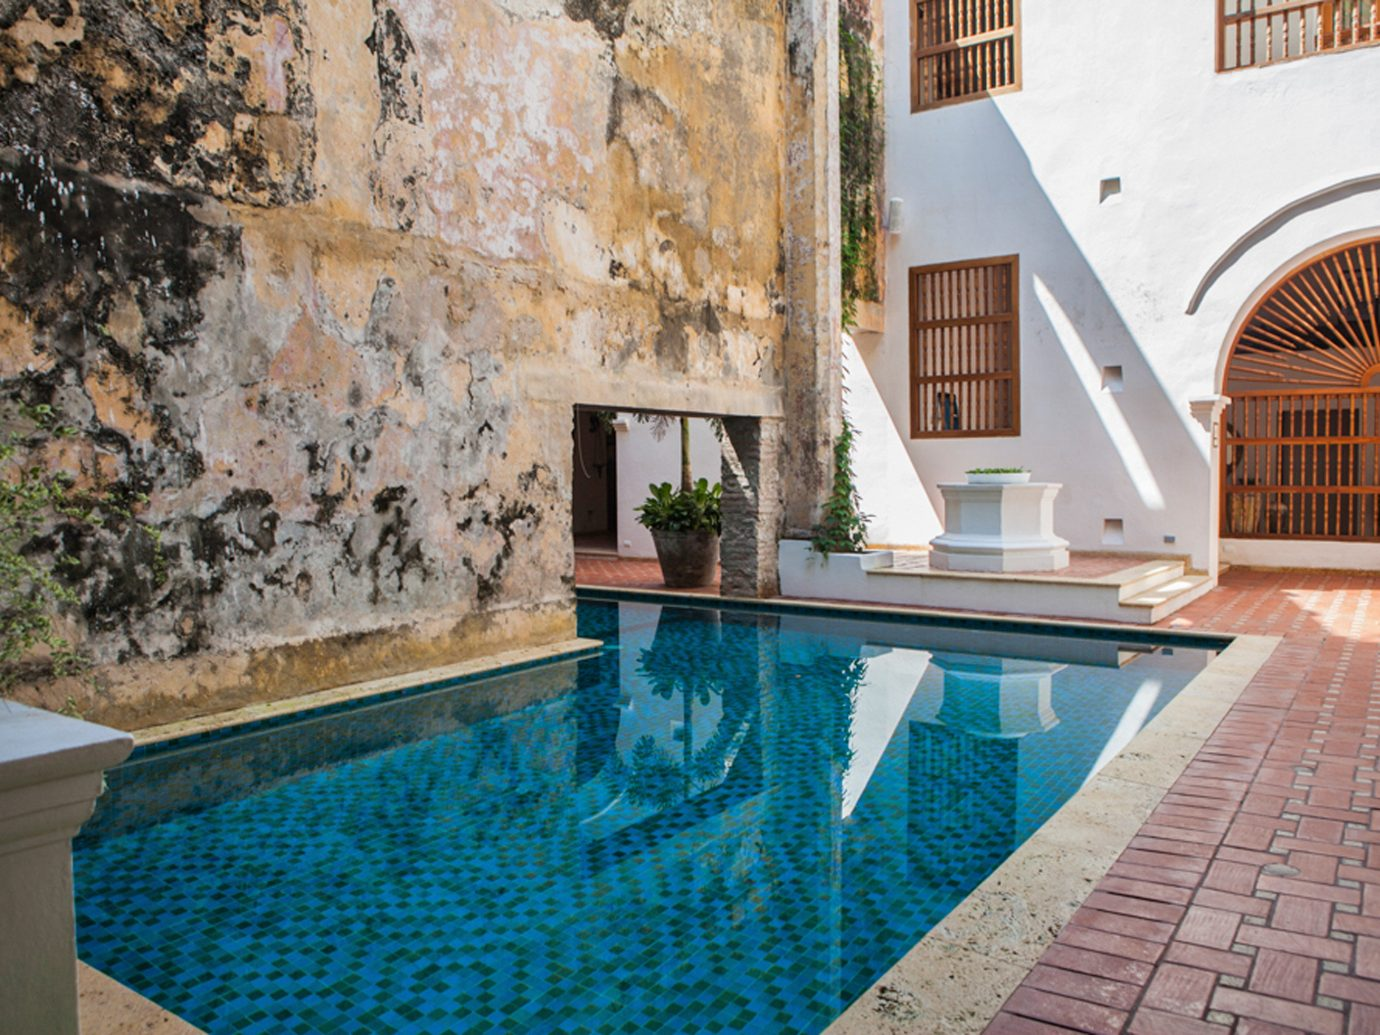 Design Hotels Luxury Play Pool Resort Romance Solo Travel Trip Ideas building swimming pool property estate brick stone backyard Villa Courtyard floor home cottage mansion real estate